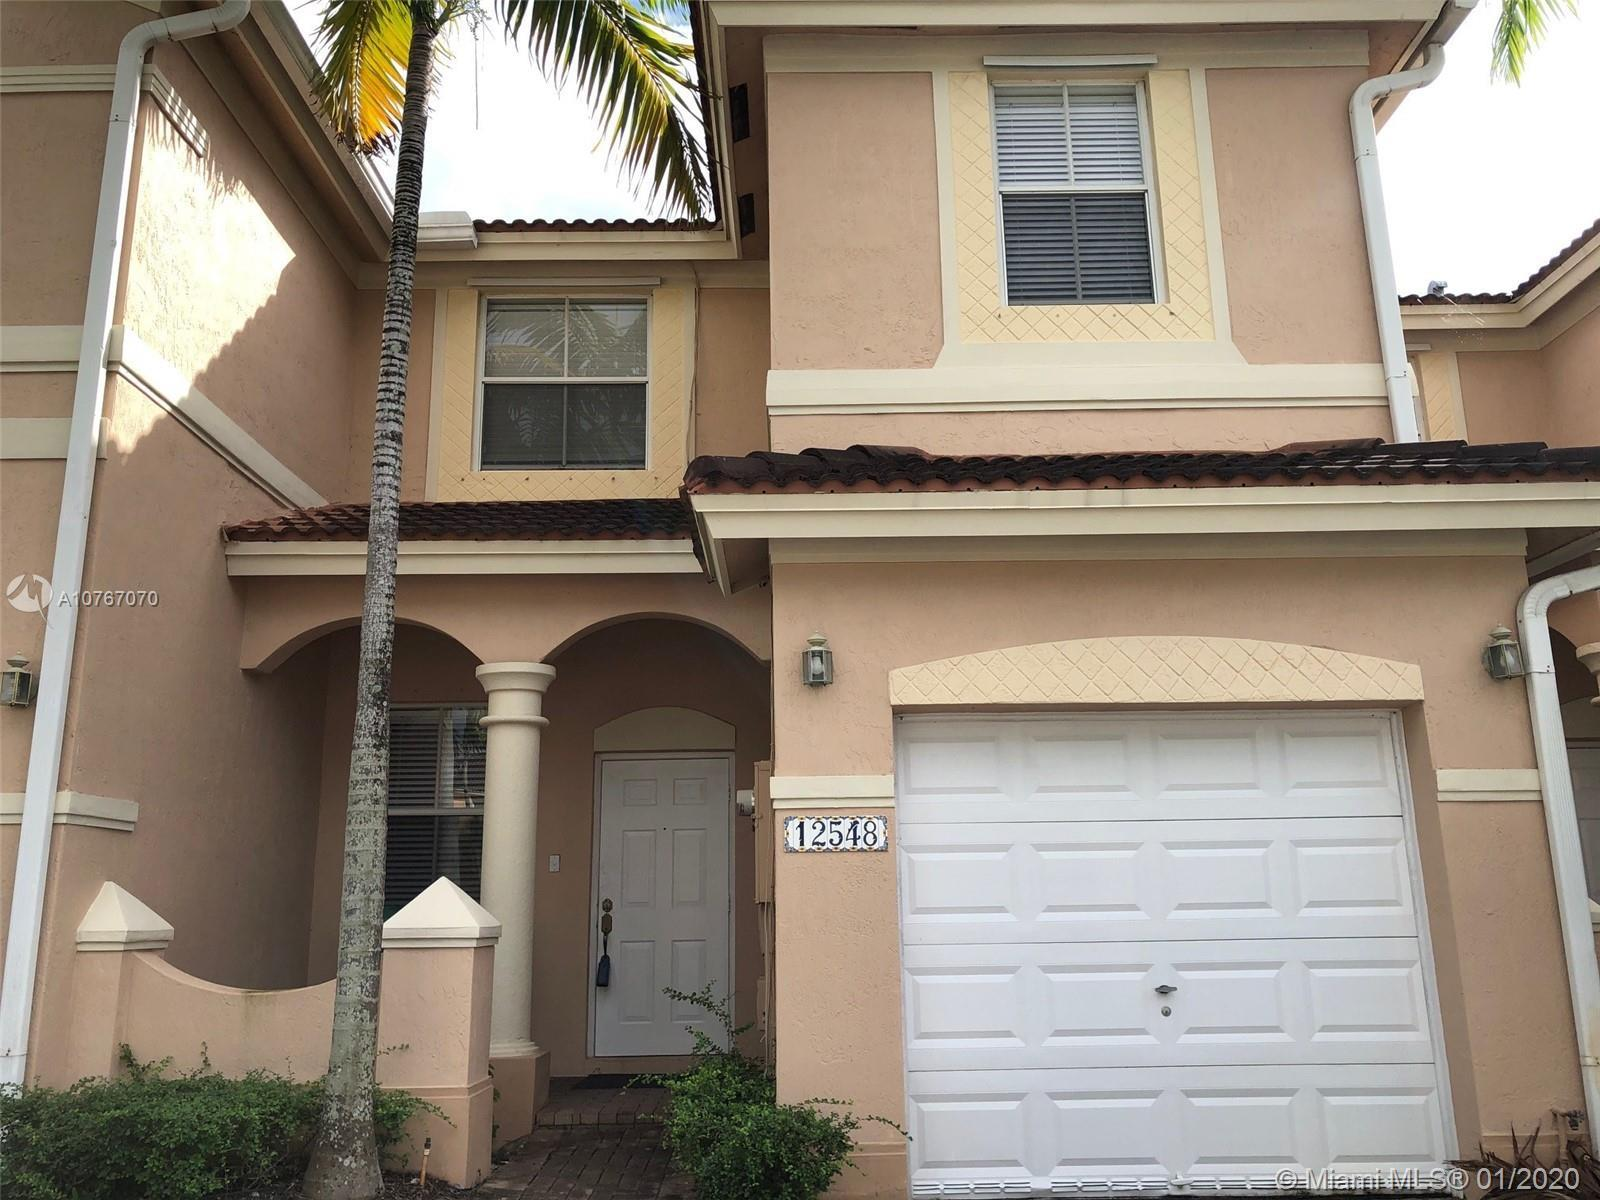 TOWNHOUSE IN EXCELLENT CONDITION AT KENDALL BREEZE. 3 BEDROOMS, 2.5 BATHROOMS AND 1 CAR GARAGE.  TIL